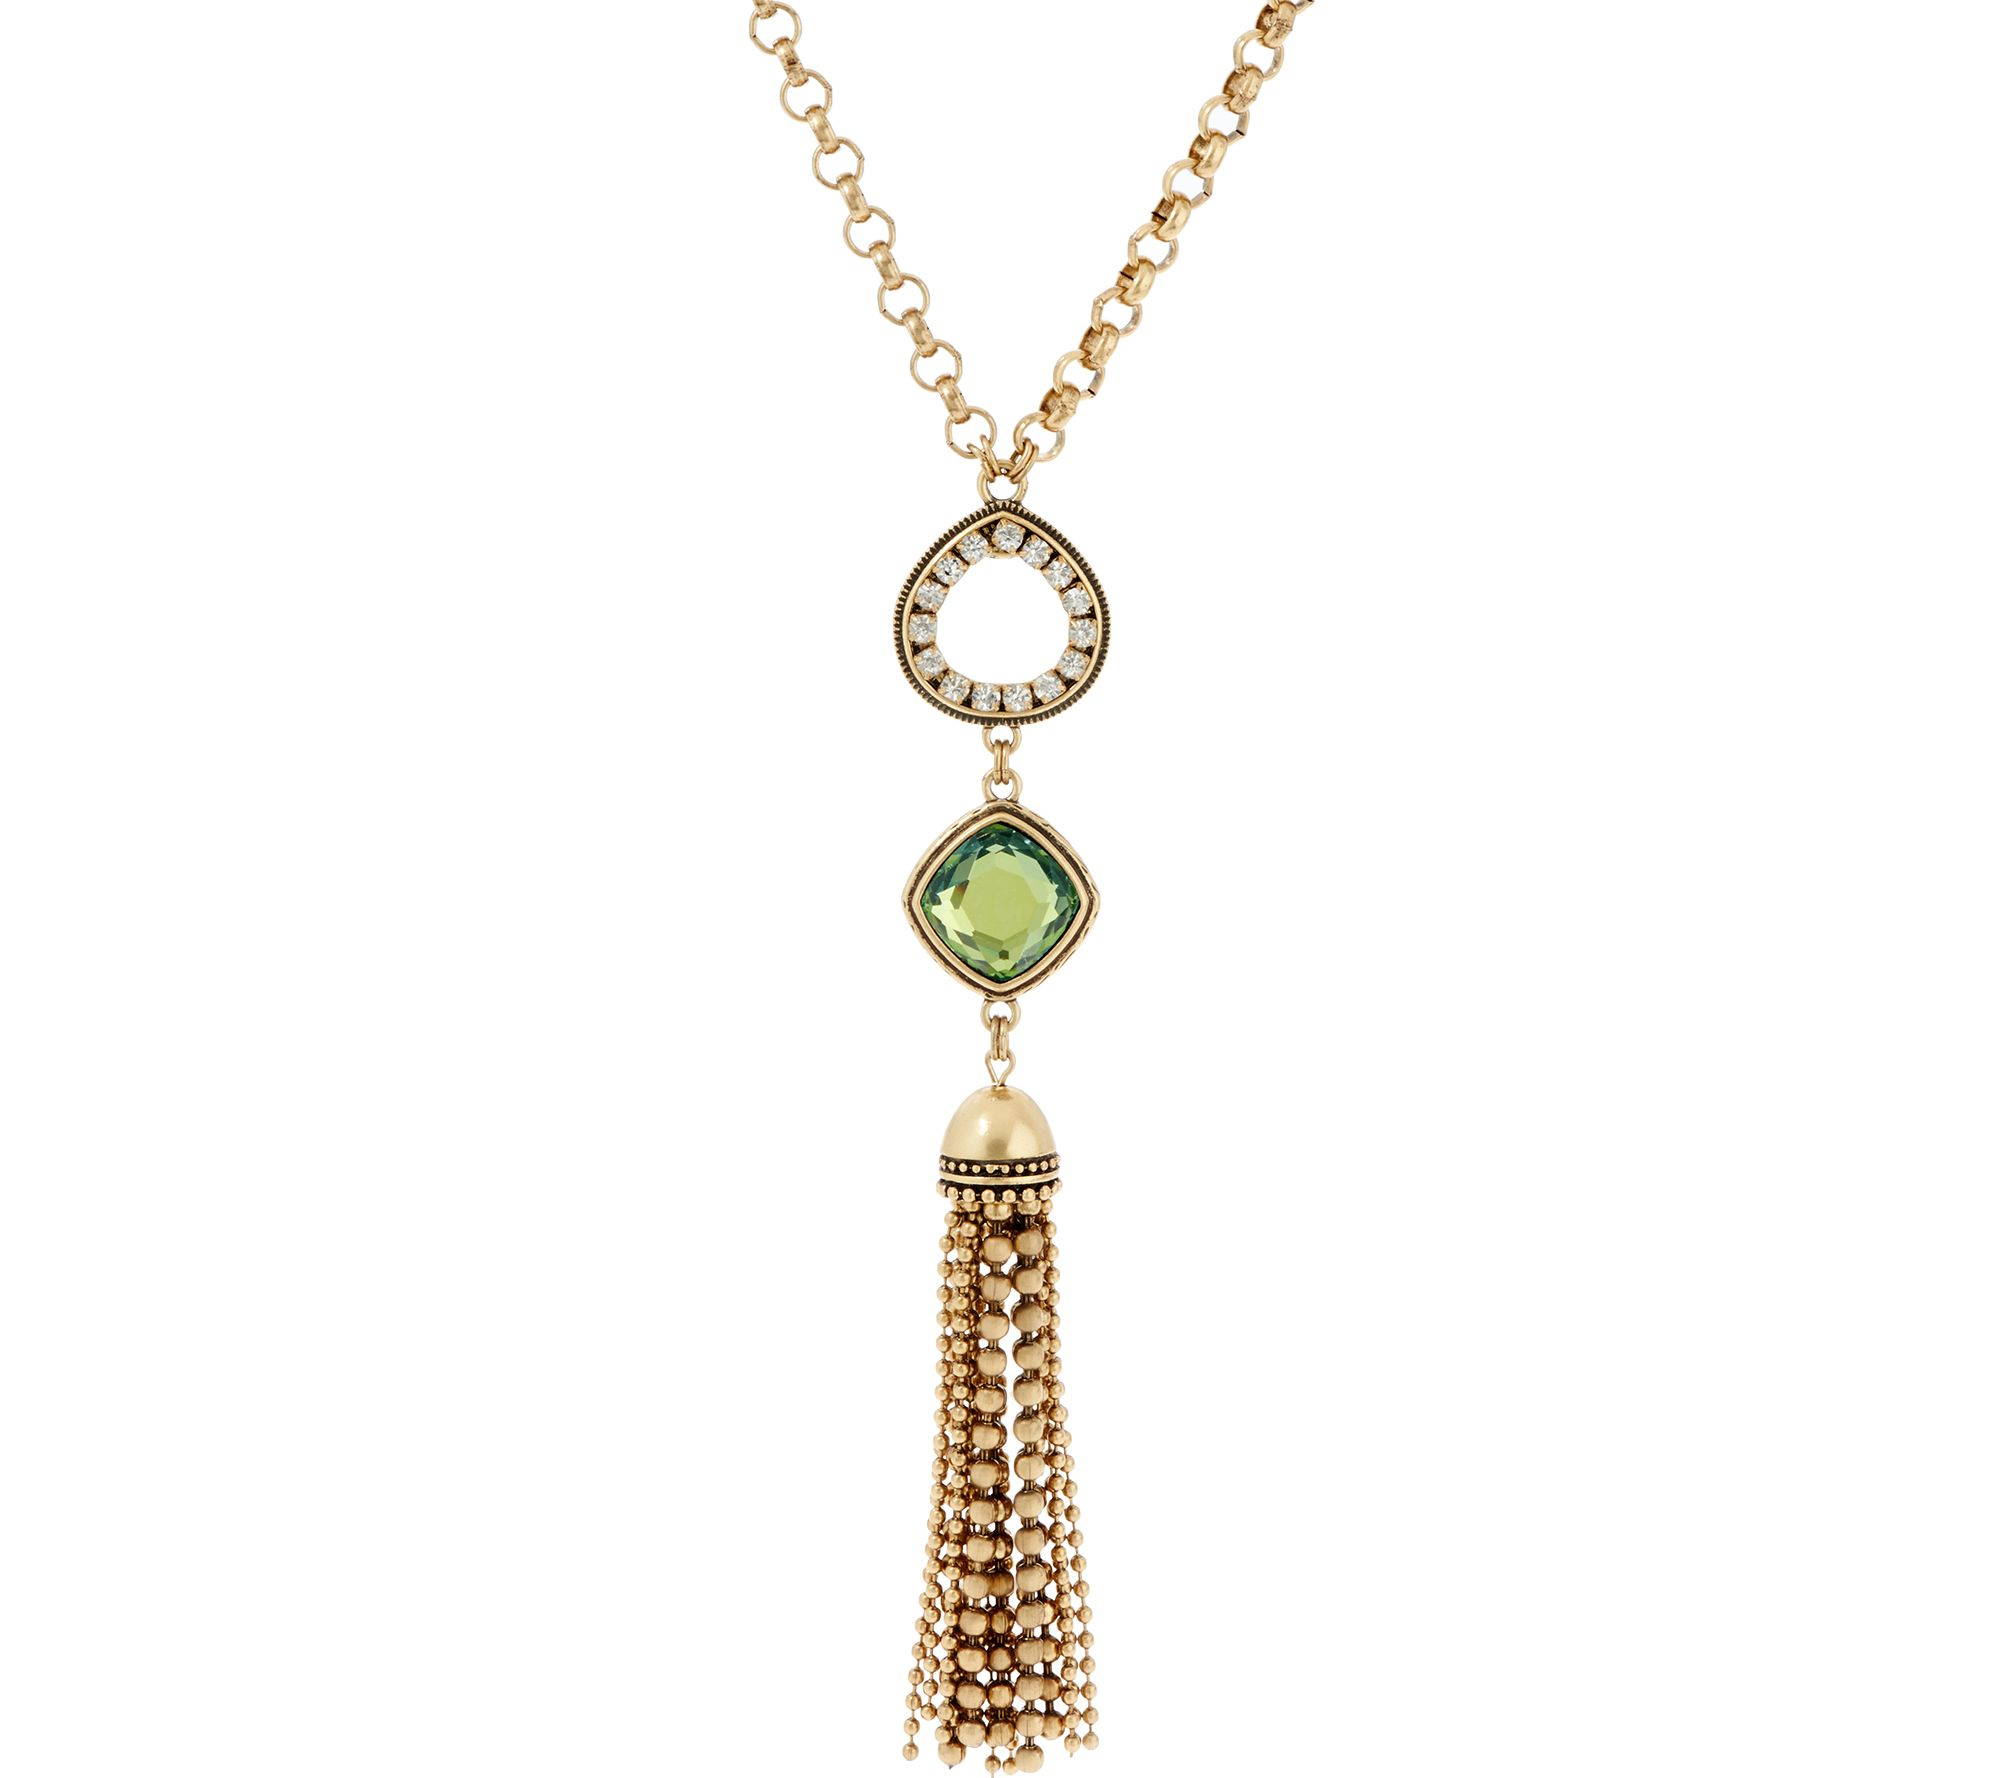 Joan rivers multi link chain necklace with tassel page 1 for Joan rivers jewelry necklaces